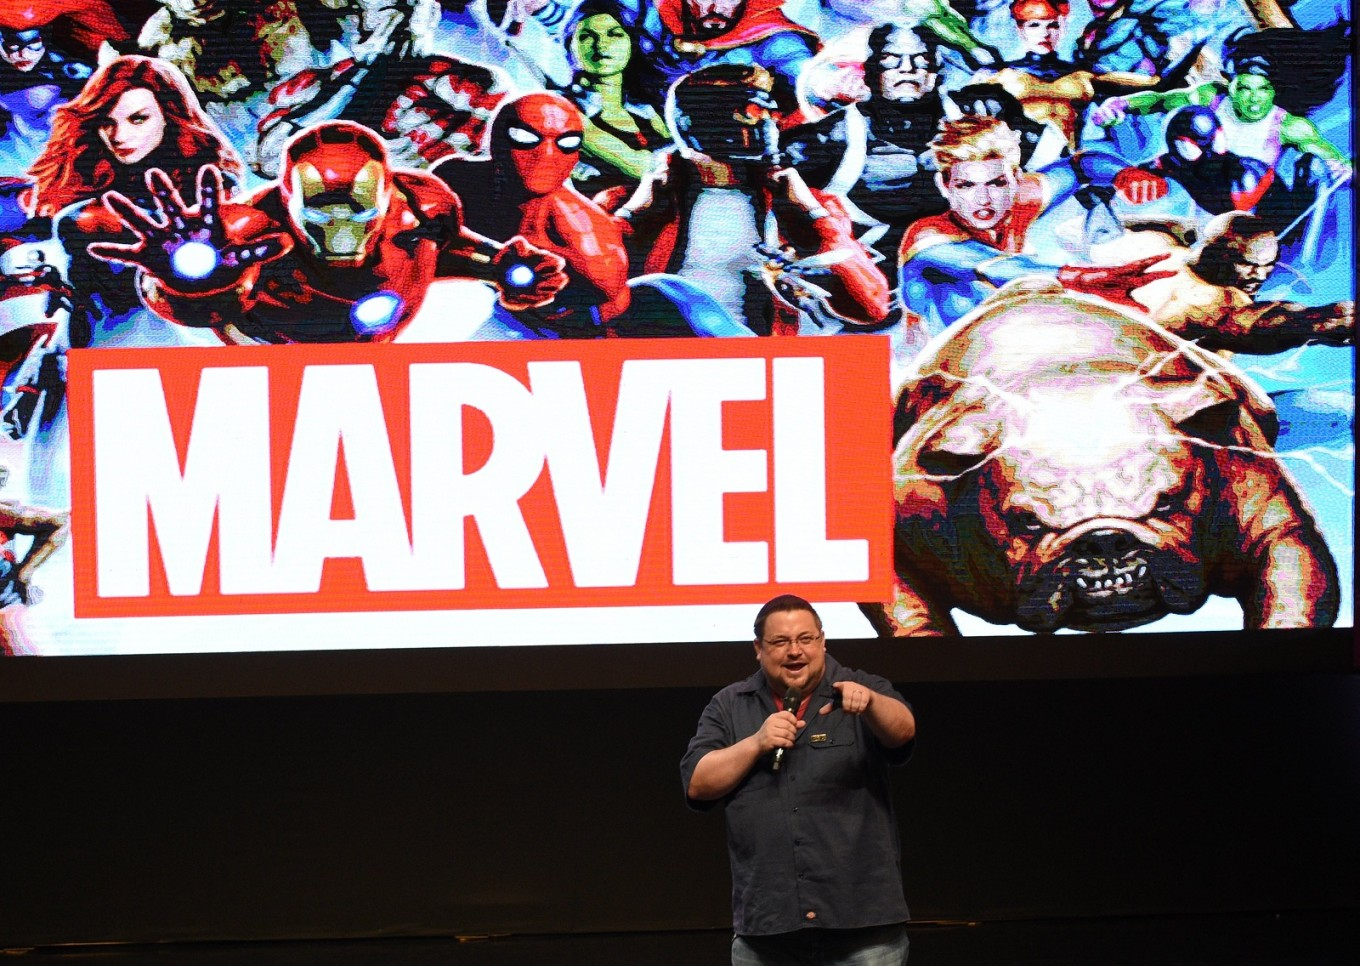 Marvel seeks to expand to fashion in Indonesia